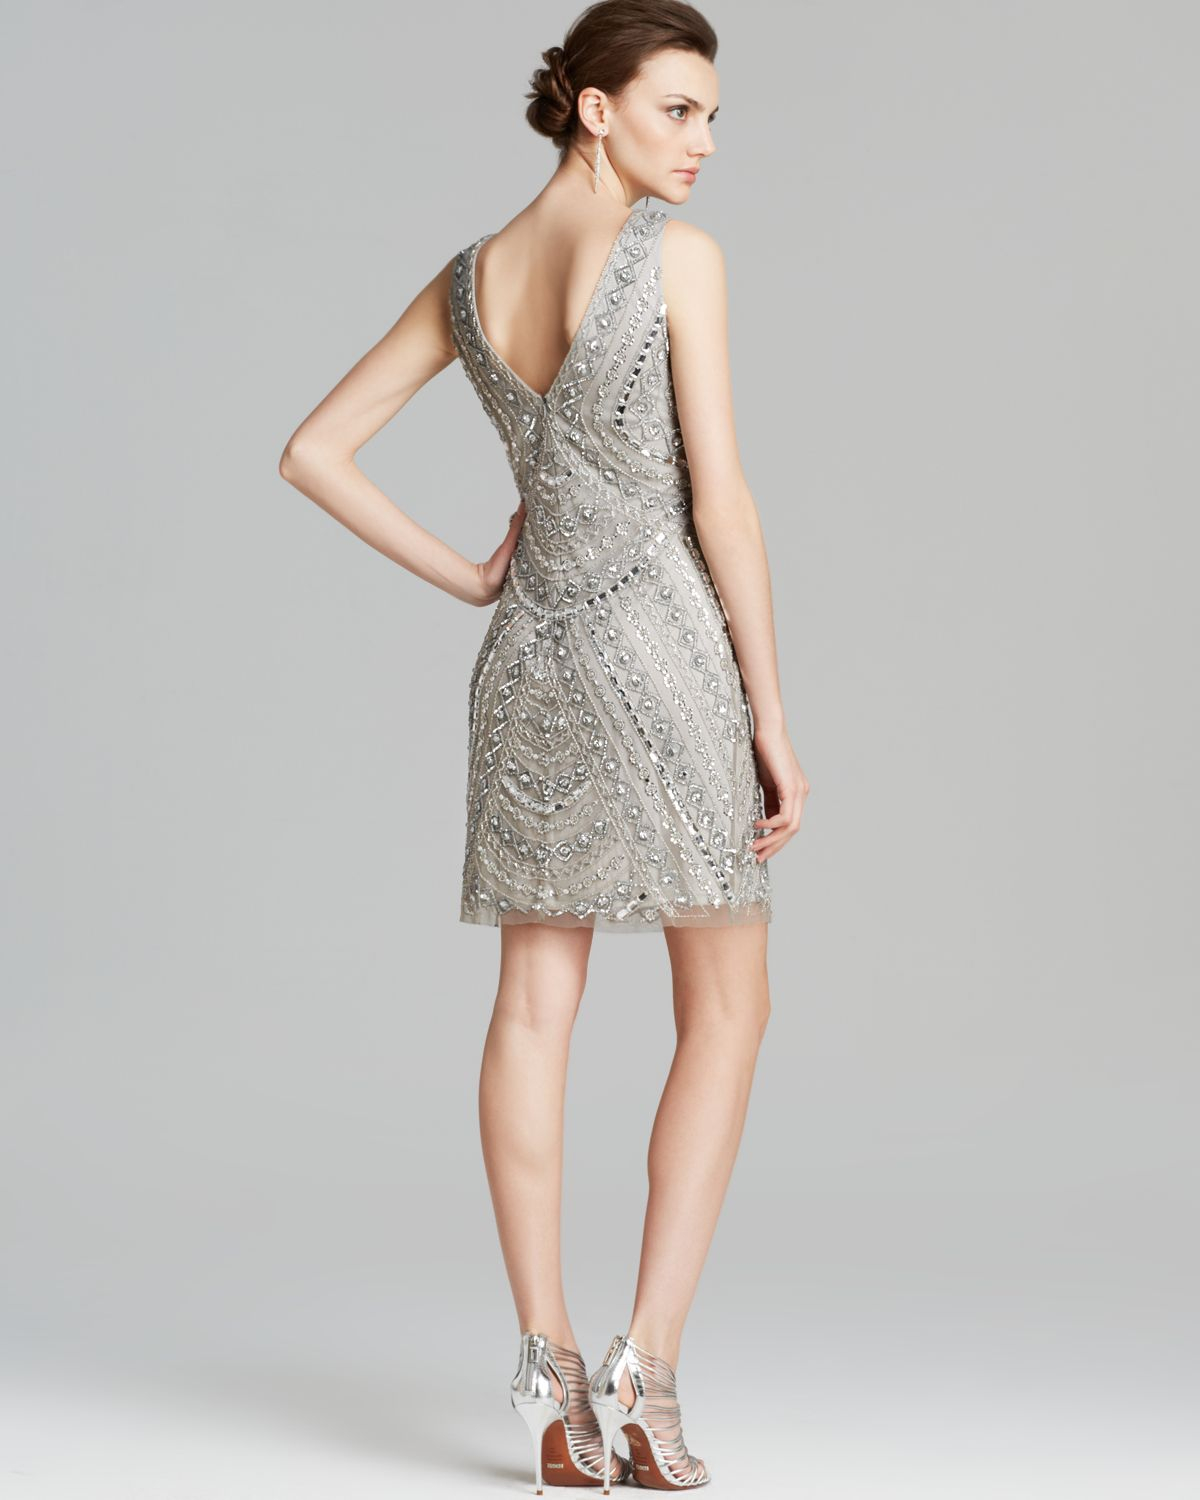 Aidan mattox Dress Sleeveless V Neck Beaded in Metallic | Lyst